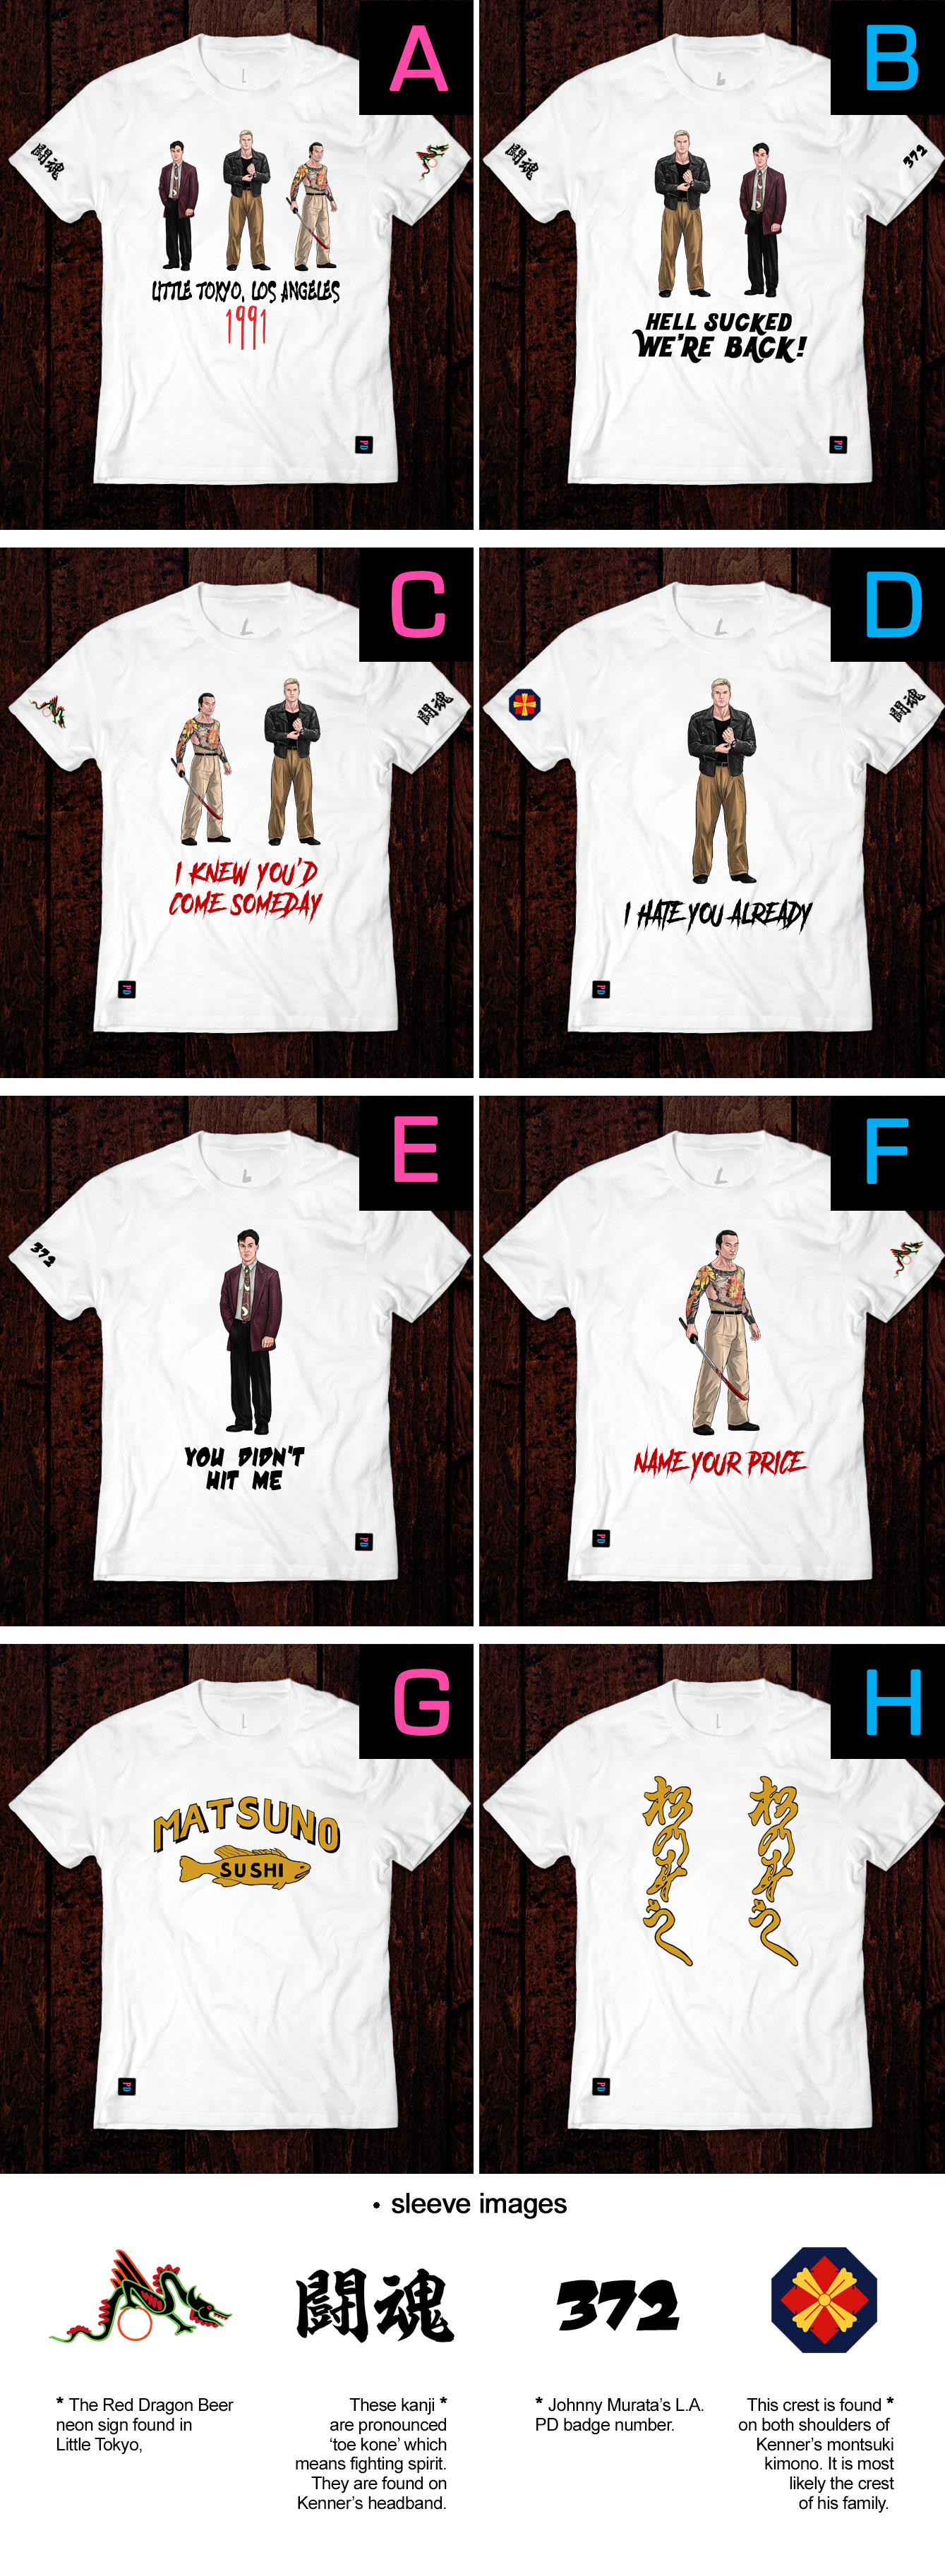 What's Missing? Popcorn PD T-Shirt designs by Marten Go aka MGO